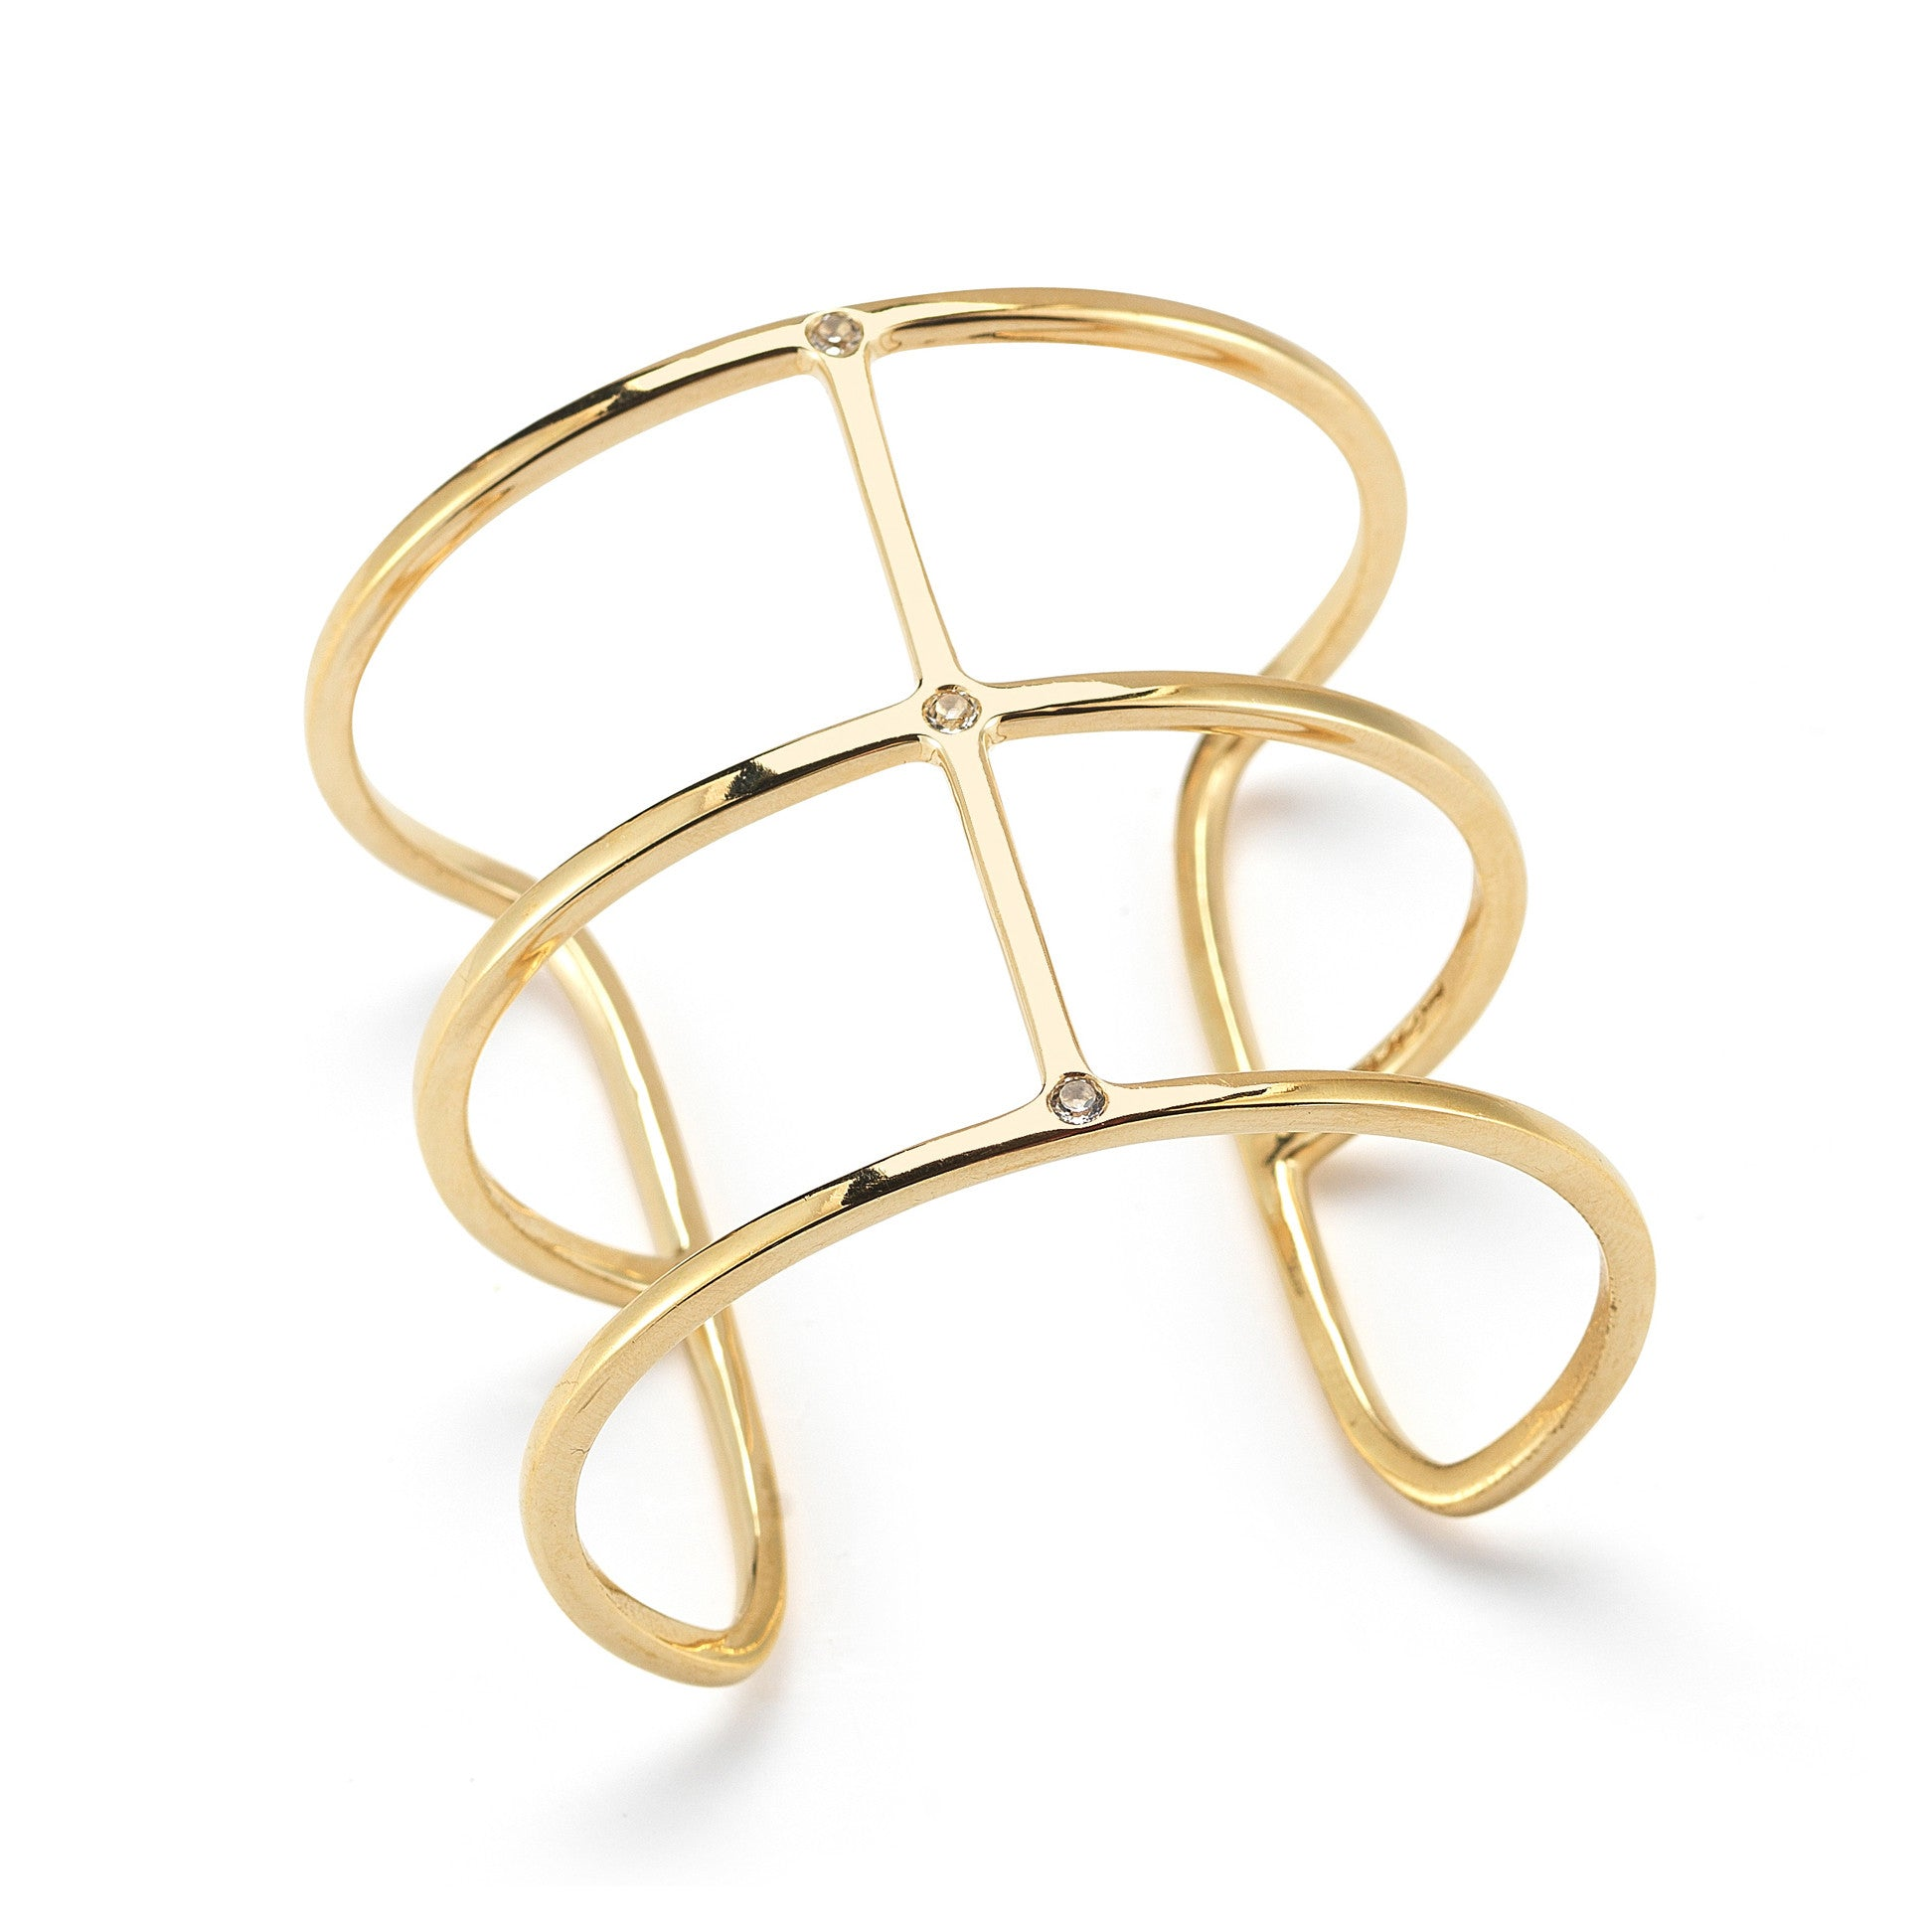 ELIZABETH AND JAMES - GOLD MONDIAN CUFF